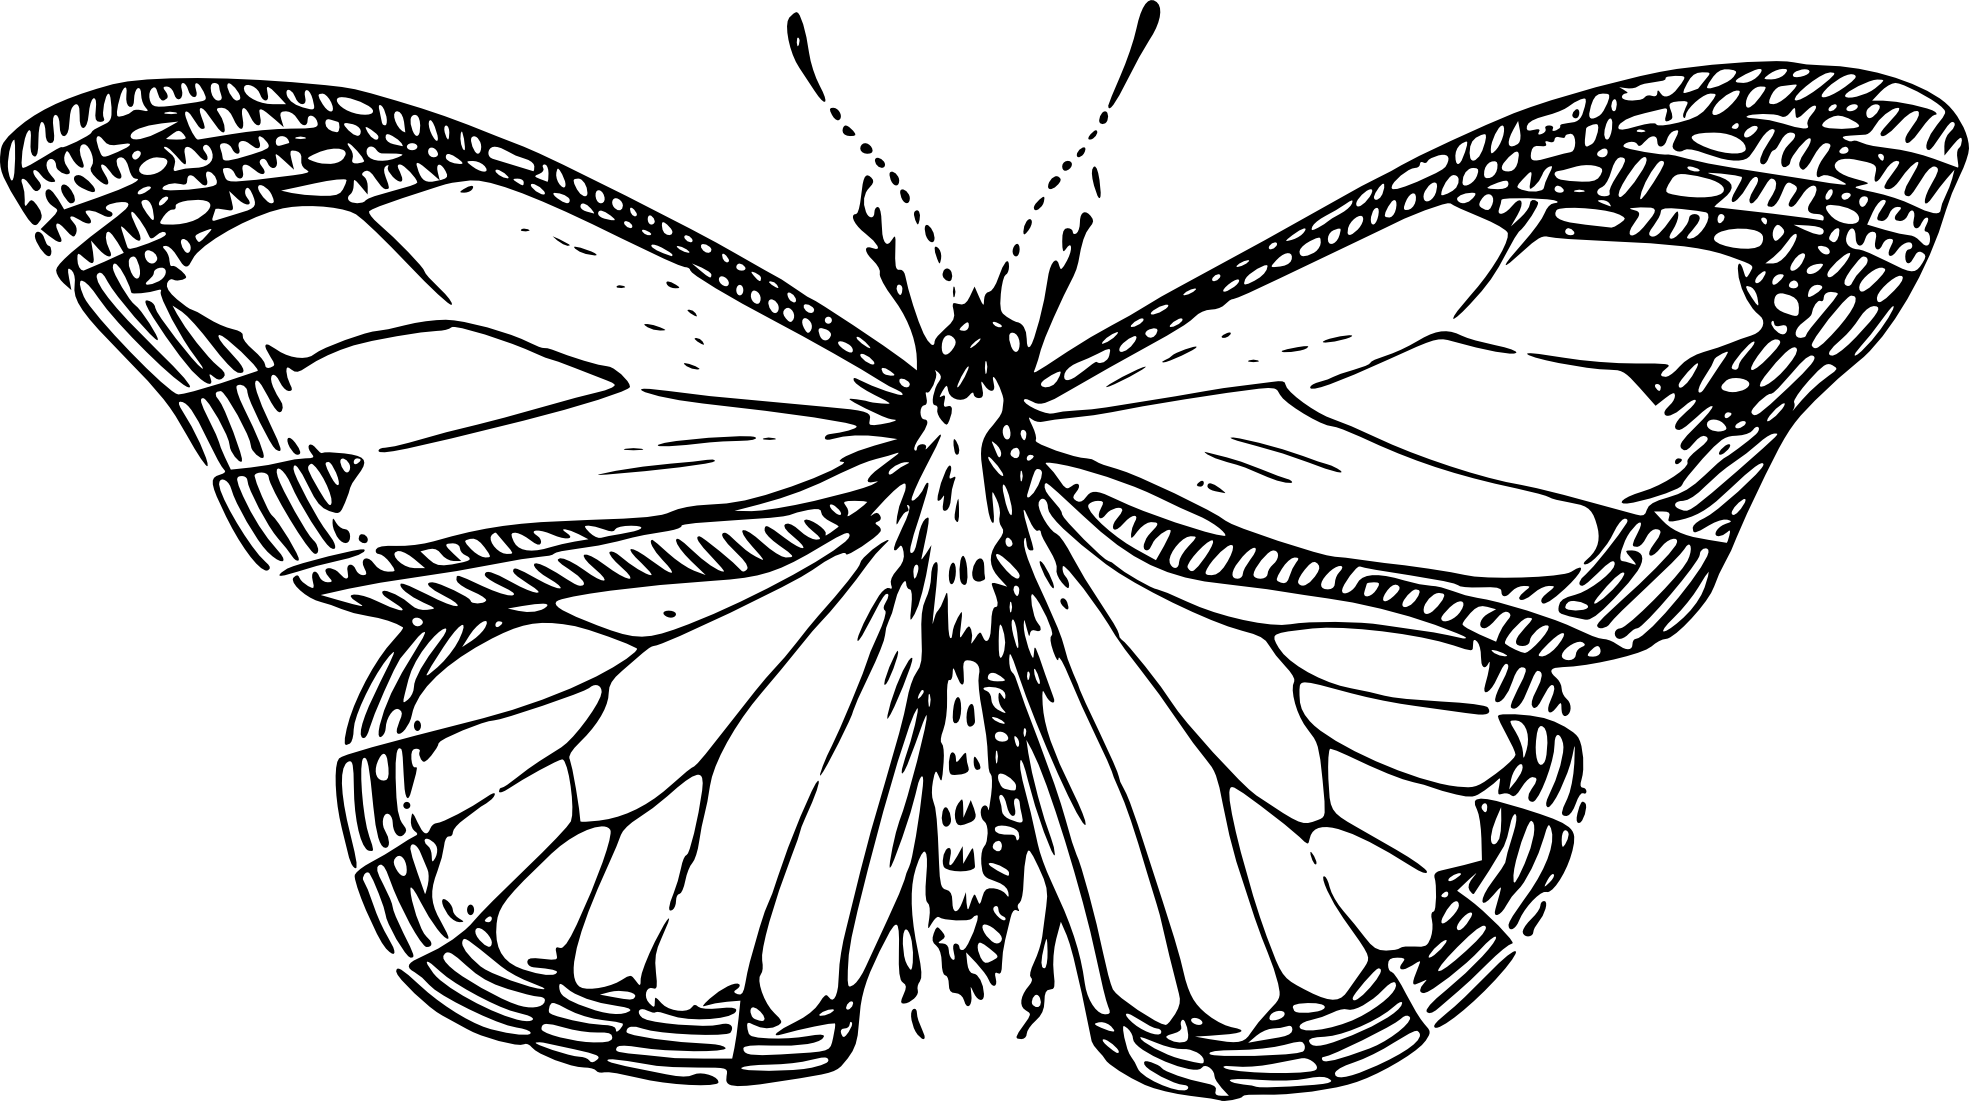 Contour Line Drawing Butterfly : Butterfly line drawing clipart best